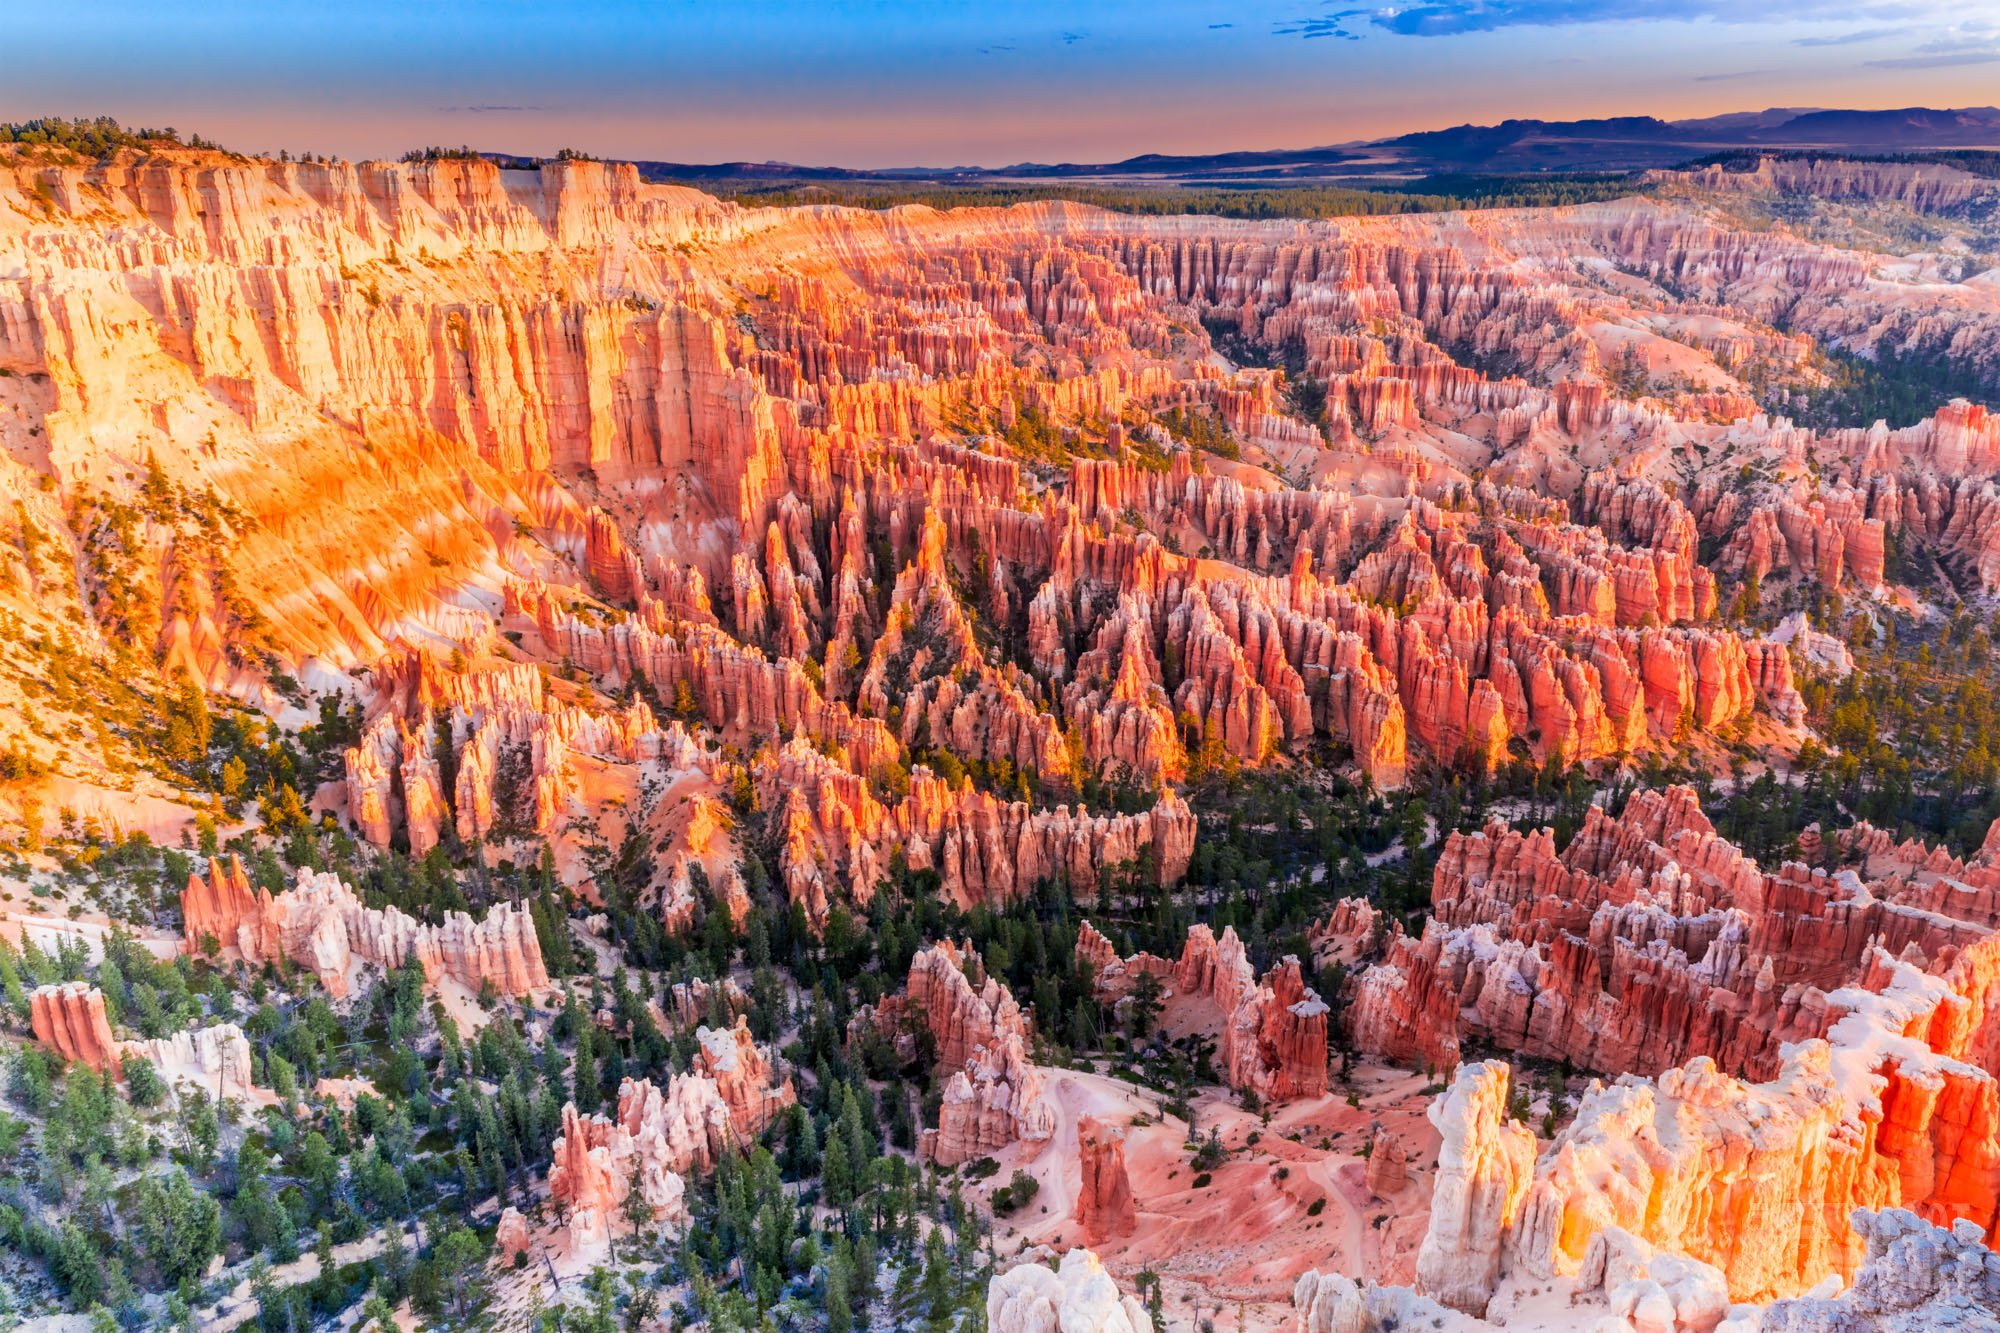 Bryce Canyon National Park sunrise, USA